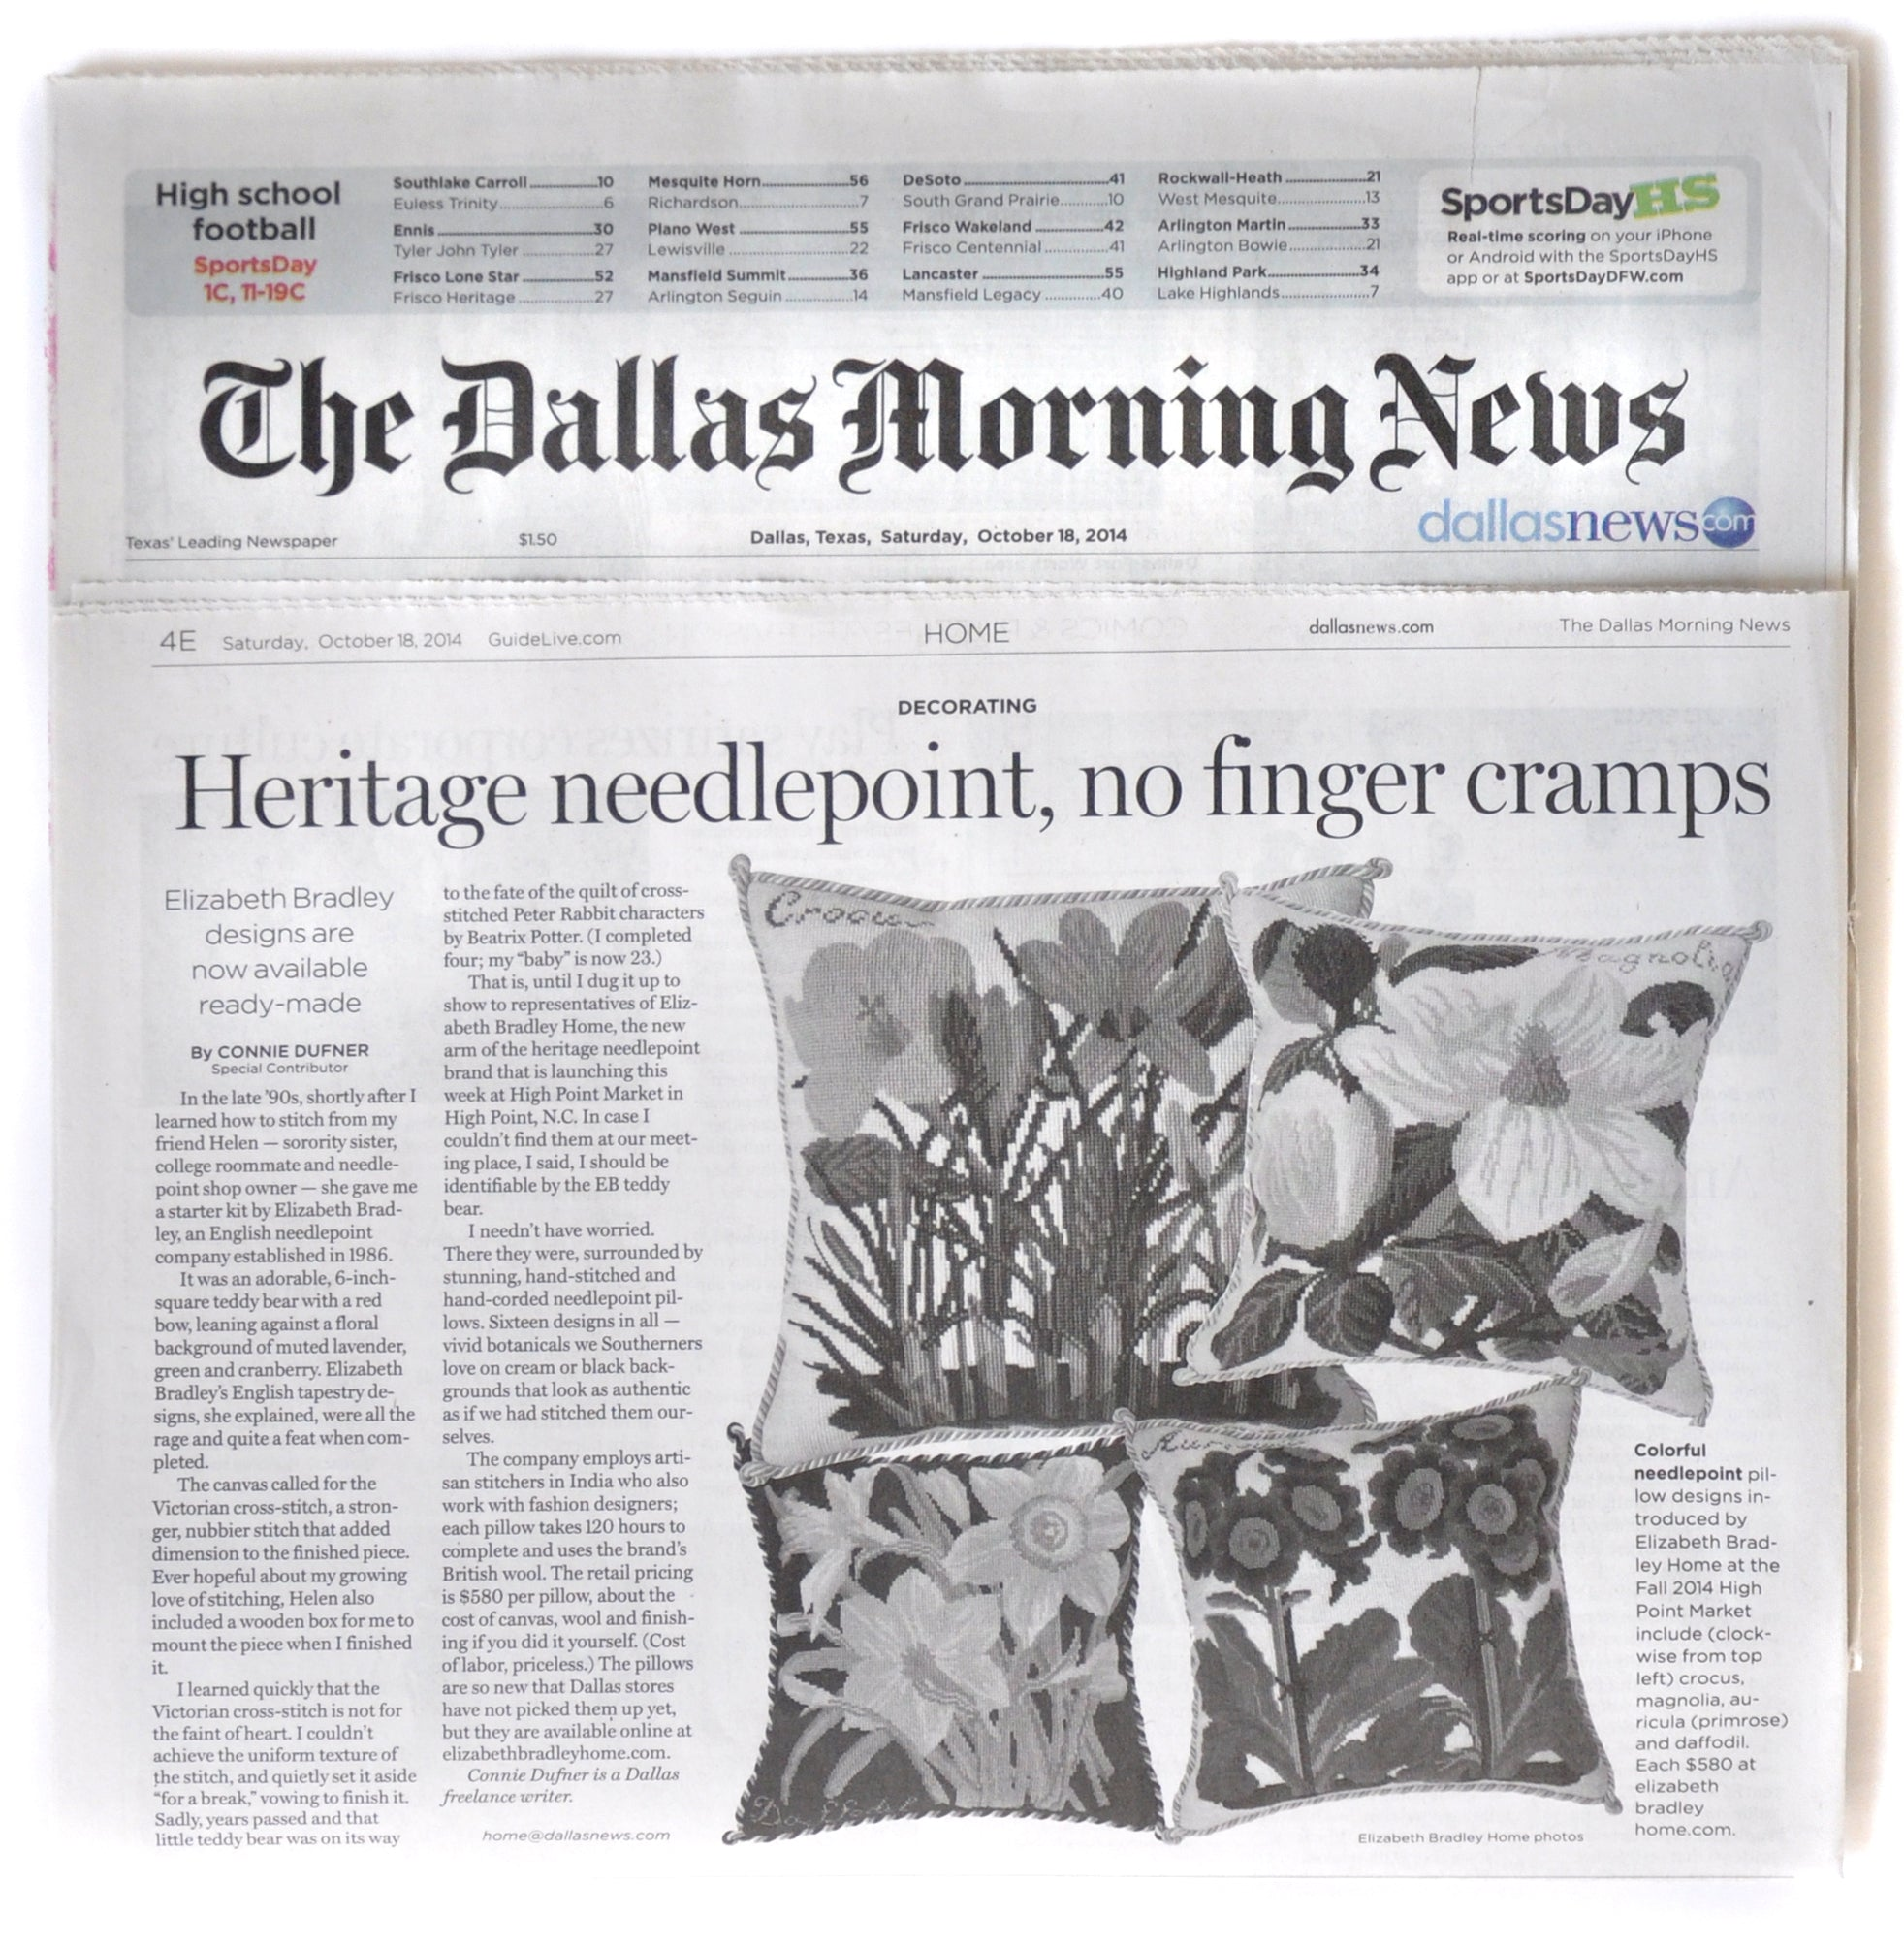 Elizabeth Bradley Design As Seen in The Dallas Morning News Newspaper